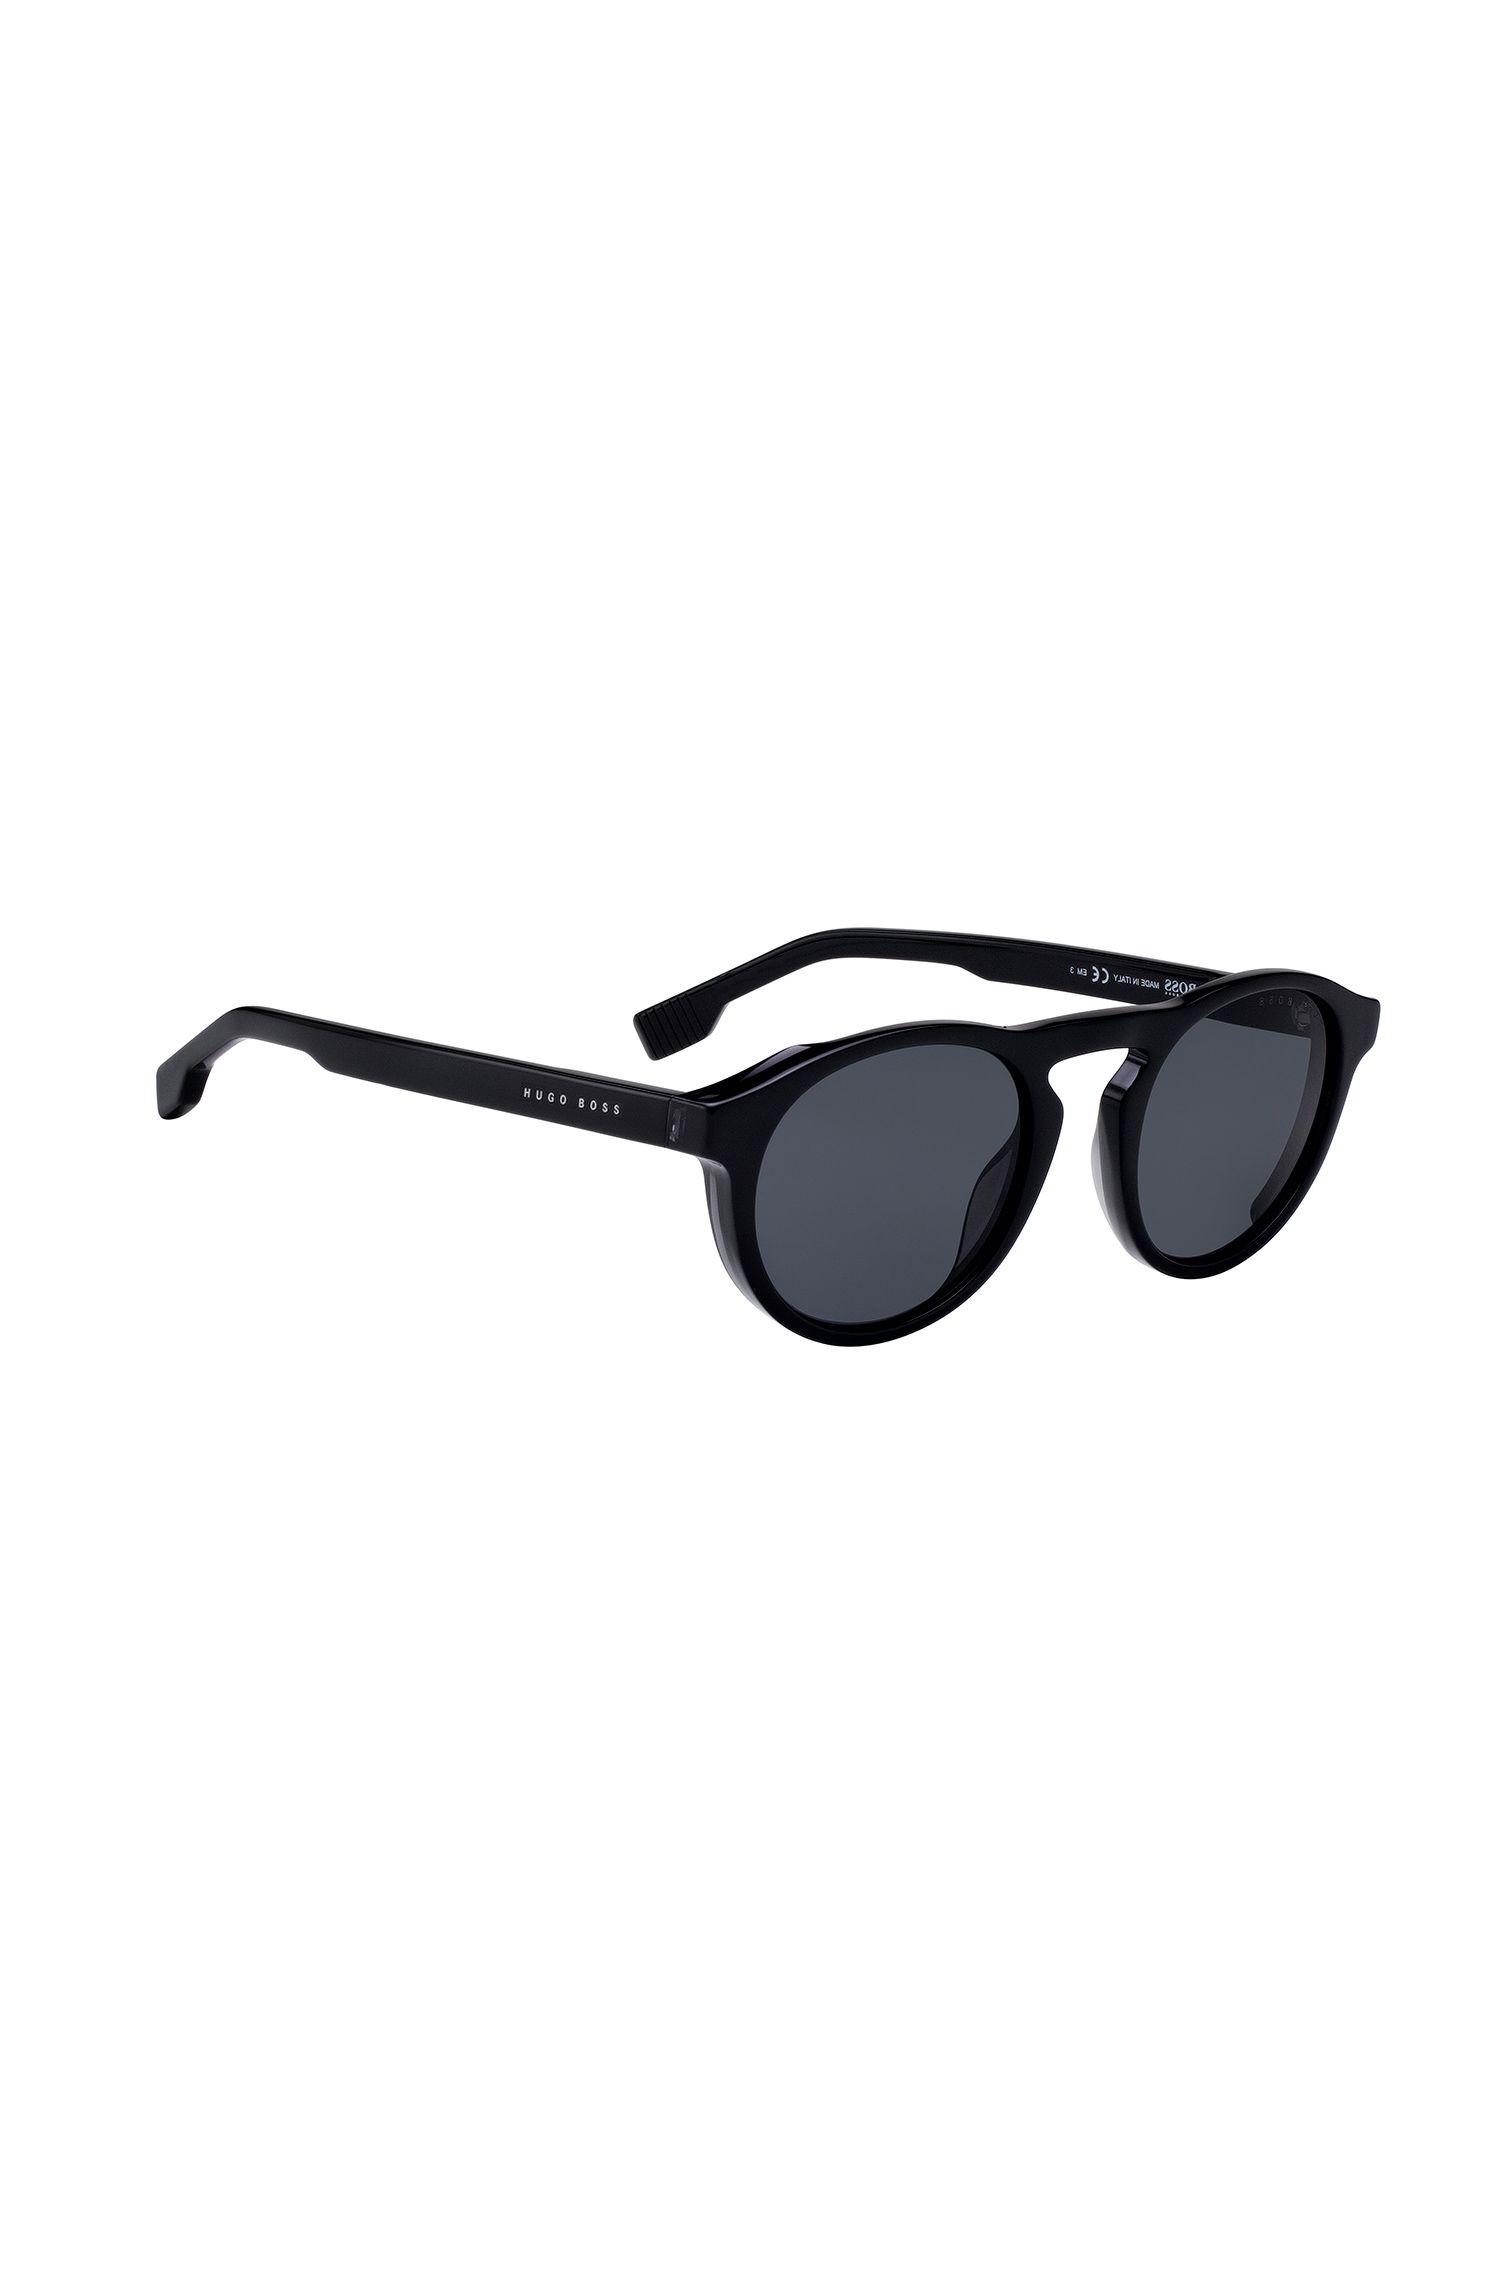 Full-acetate sunglasses with keyhole nose